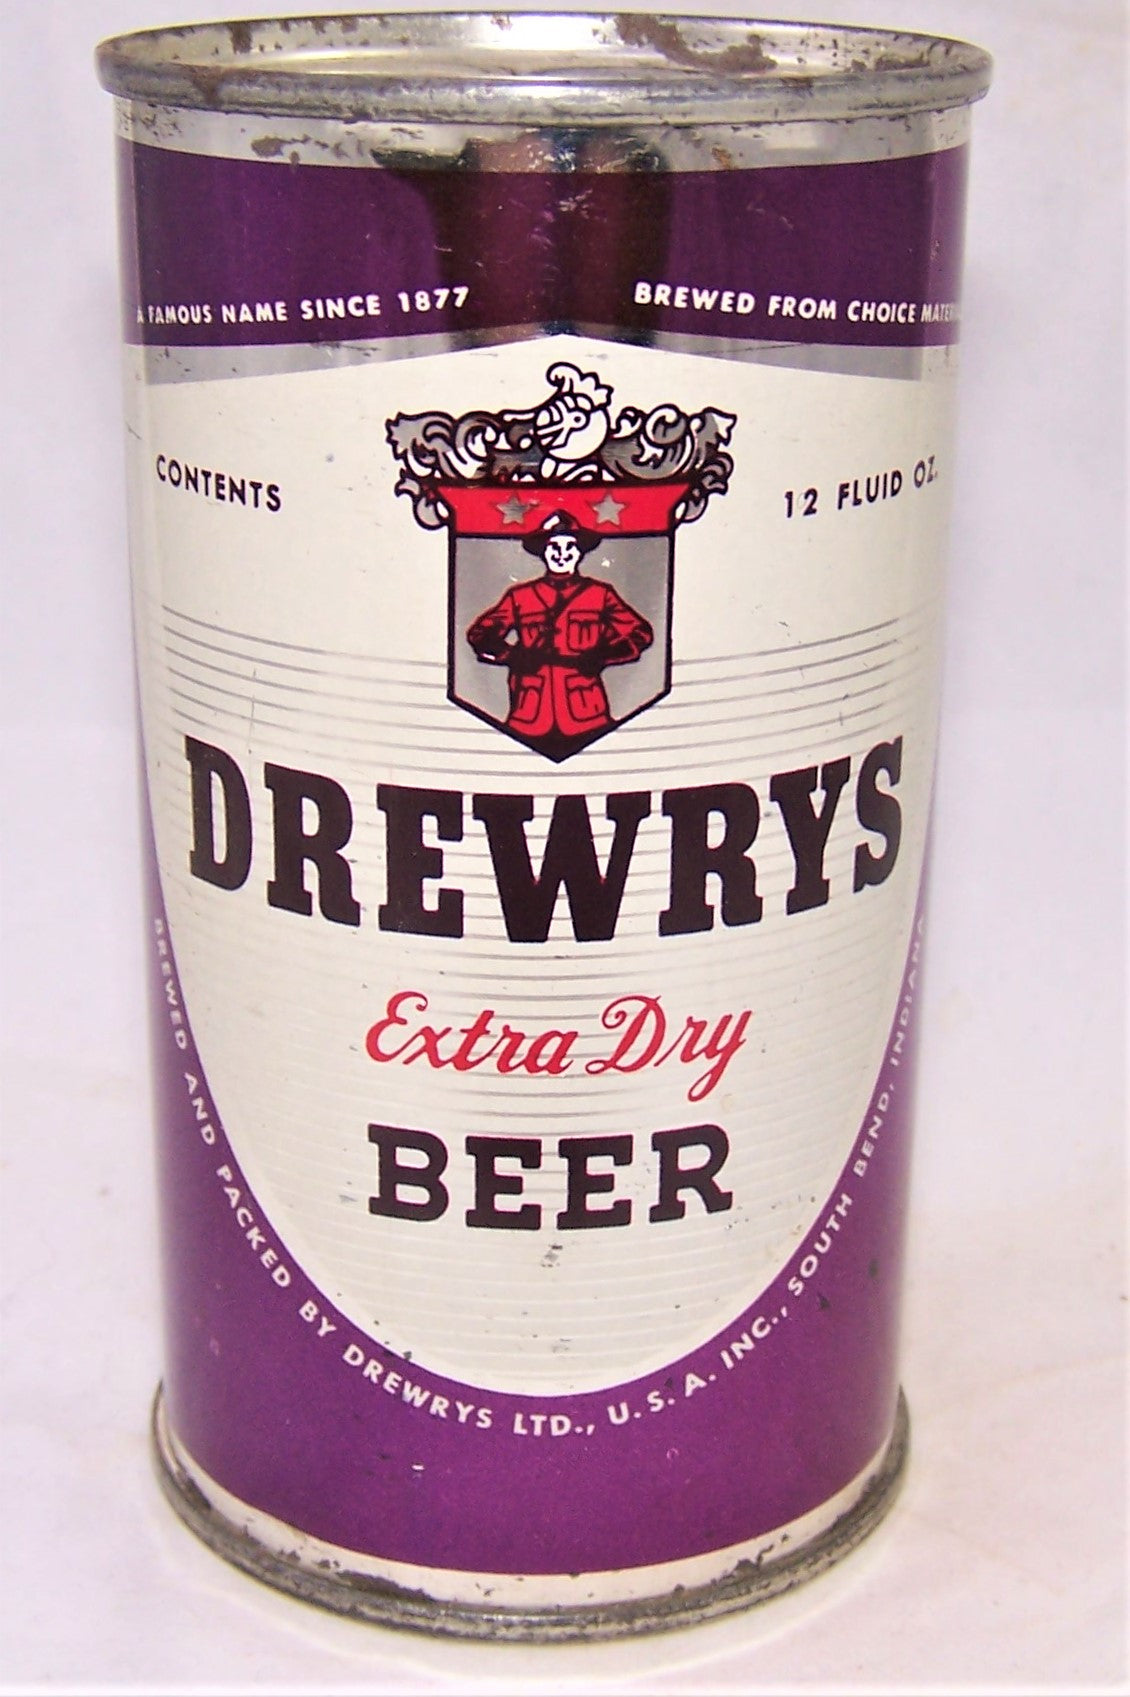 Drewrys Extra Dry (Your Character) USBC 57-03, Grade 1/1+ Sold on 05/03/19